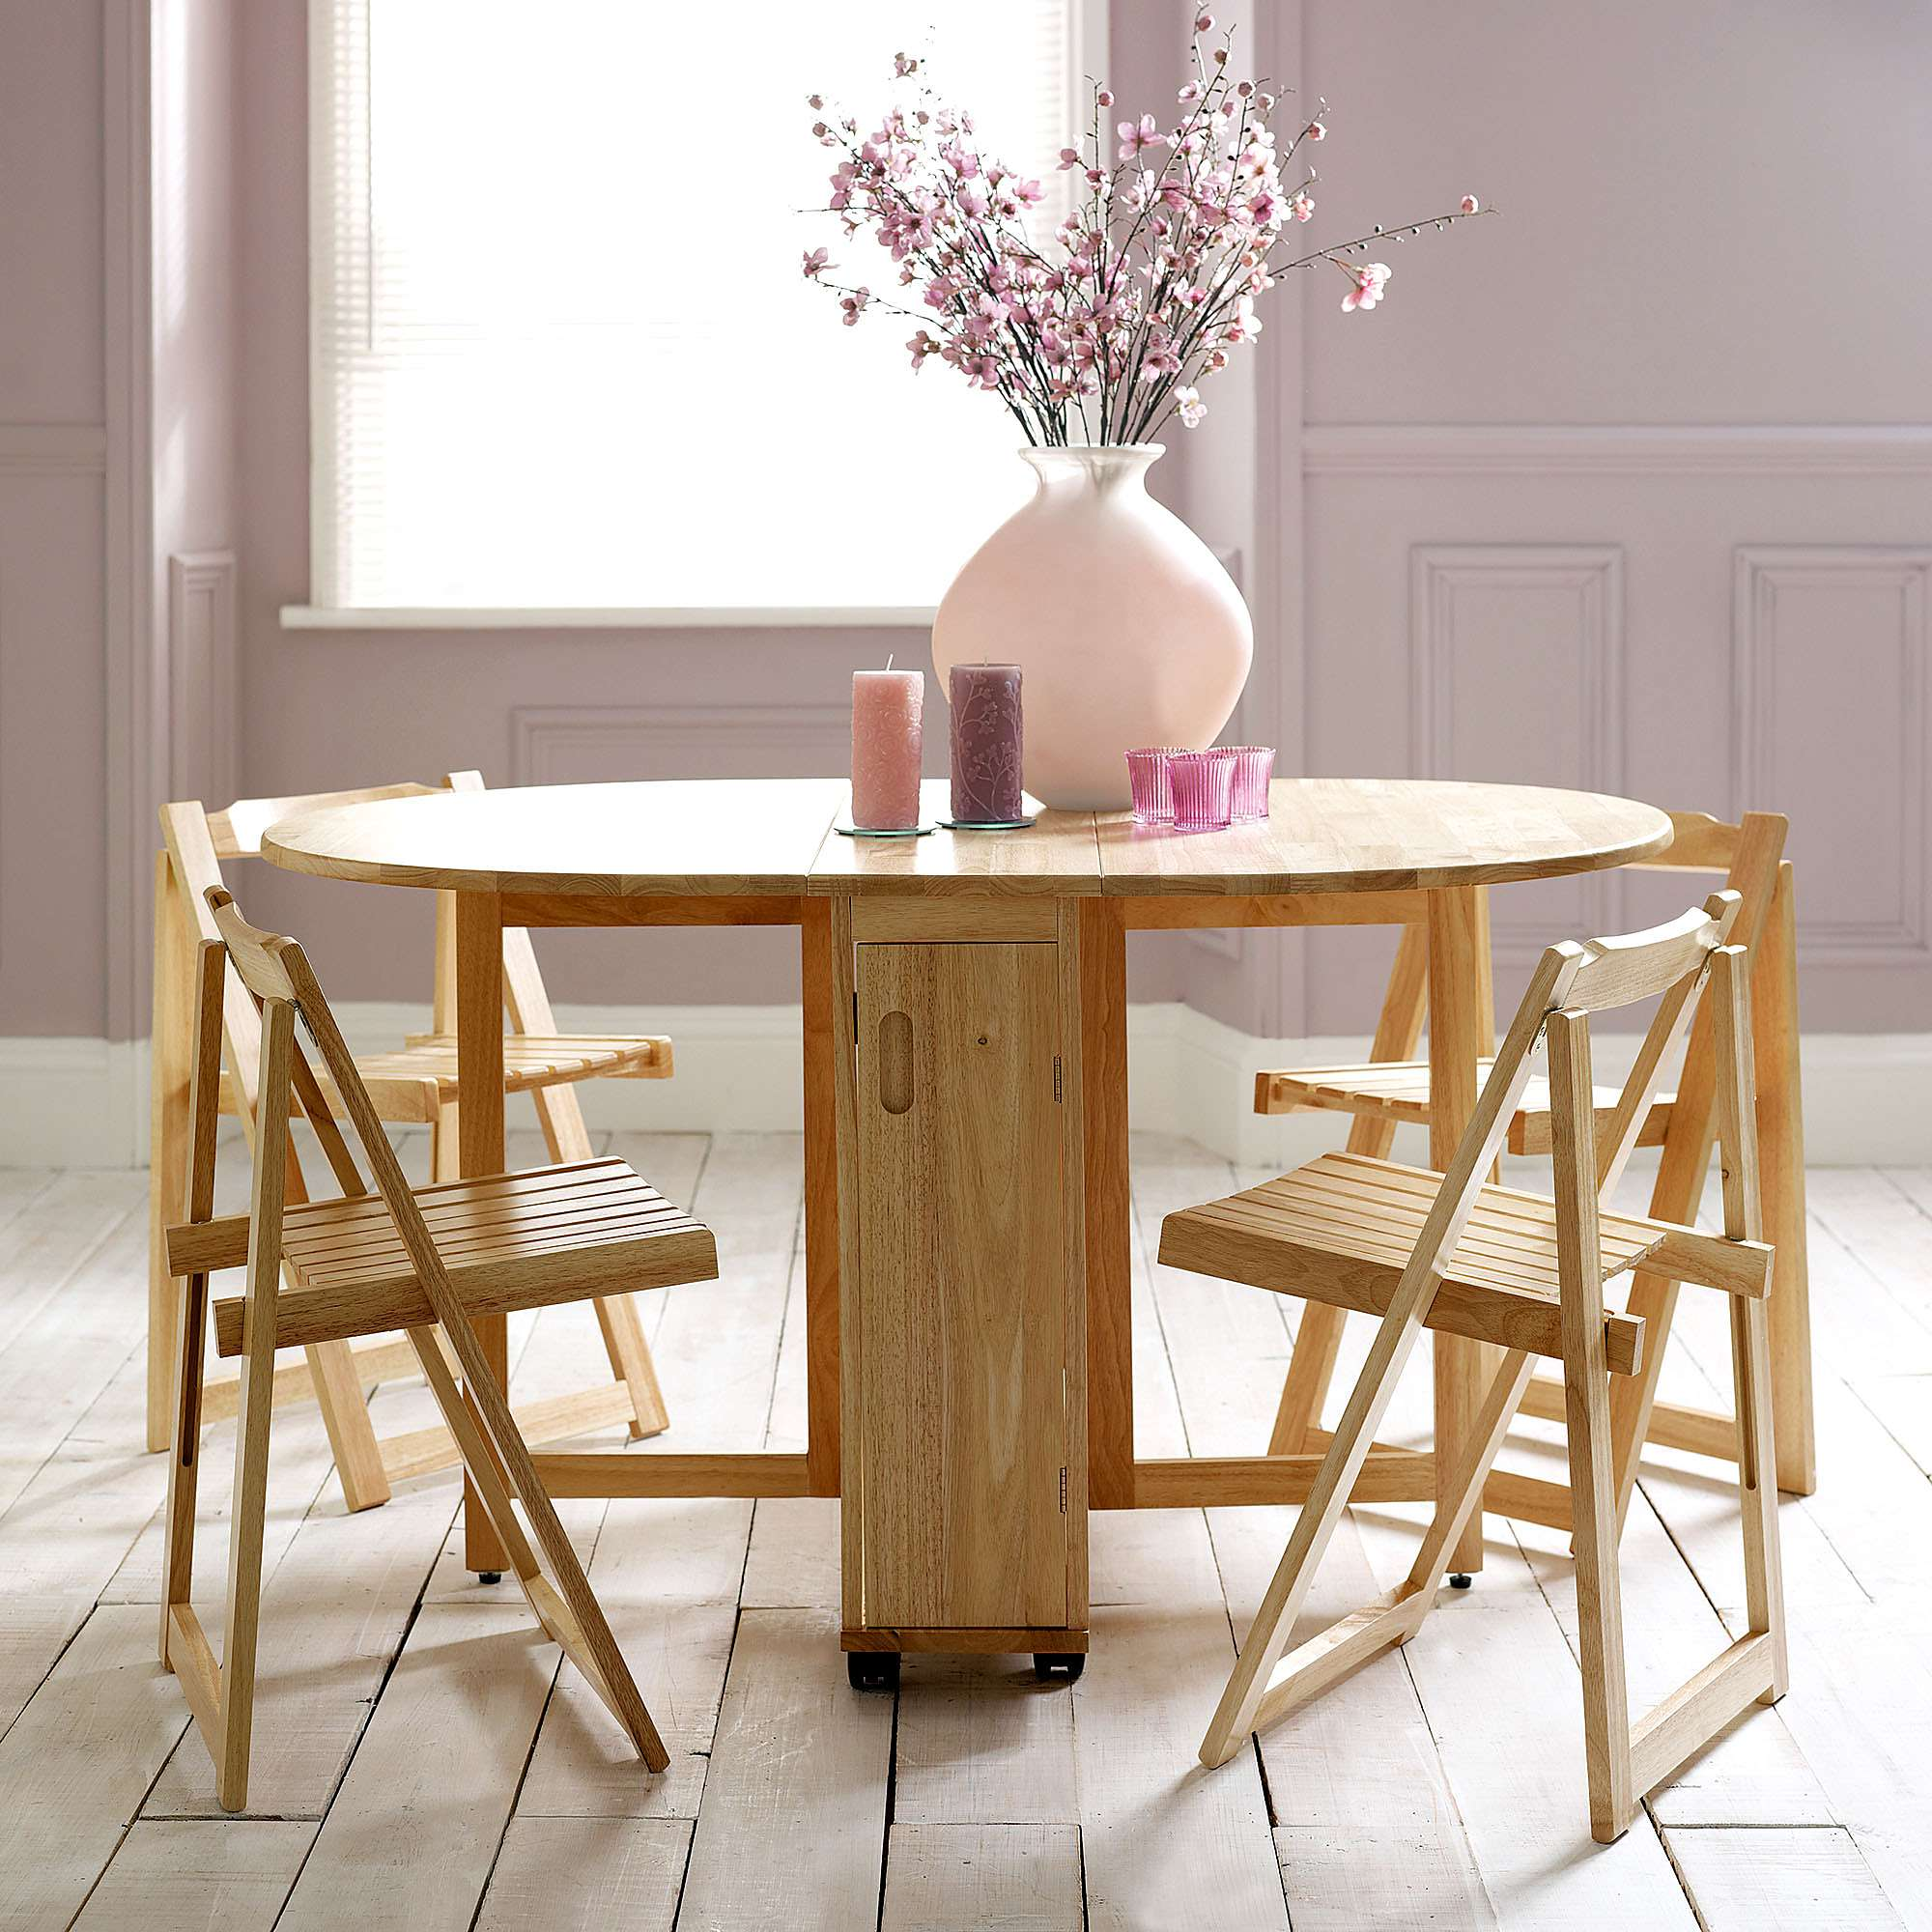 Choose a Folding Dining Table for a Small Space Adorable  : Choose a folding dining table 5 from adorable-home.com size 2000 x 2000 jpeg 354kB